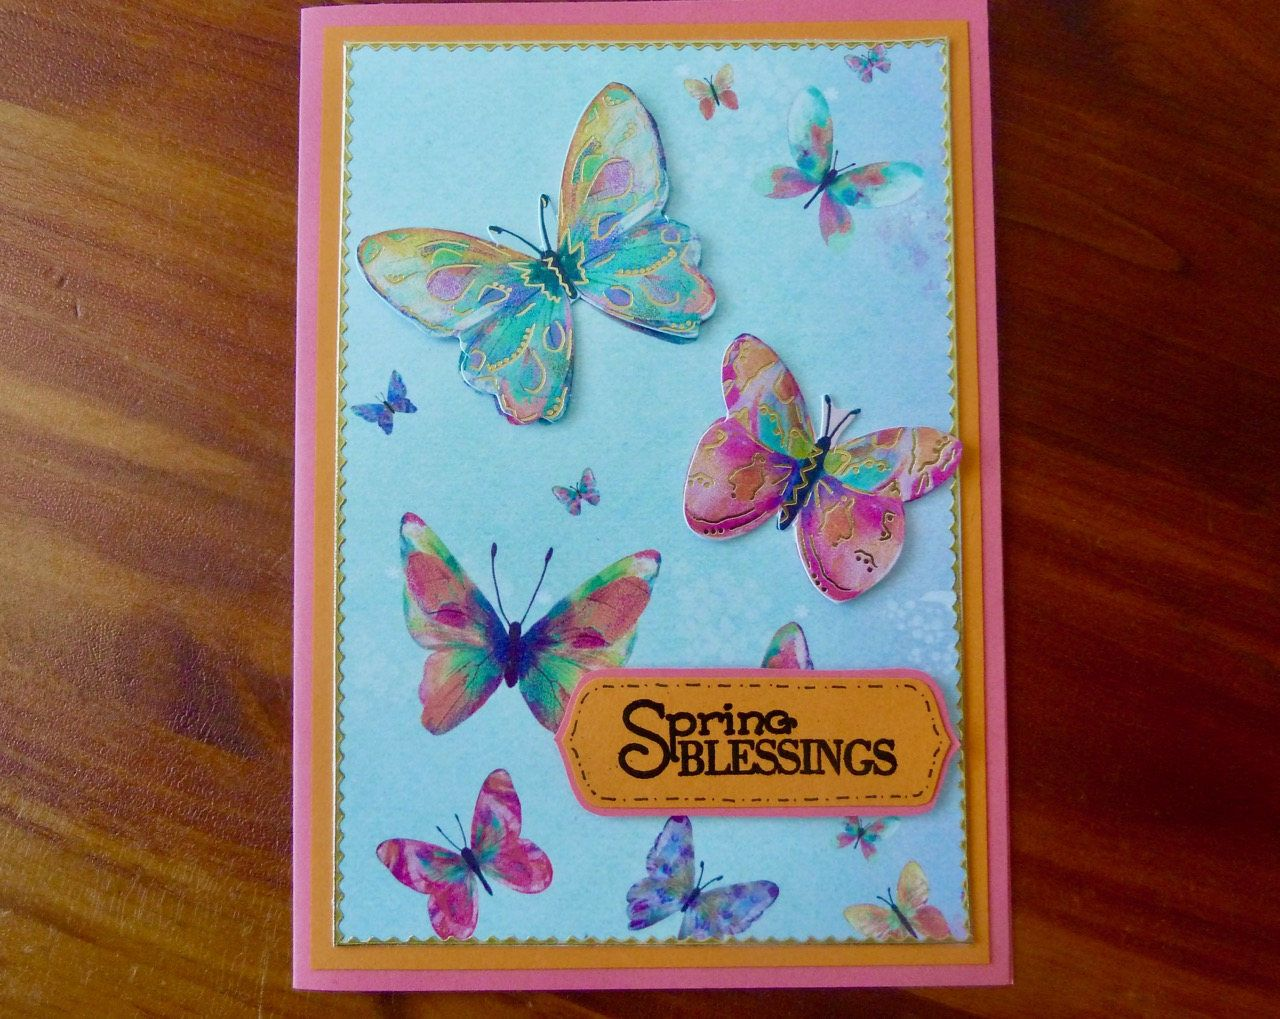 Friendship Card Making Ideas Part - 49: Bright Spring Friendship Card, Handmade Encouragement Card, All Occasion  Card, Thinking Of You, Spring Blessings, Paper Handmade Greeting